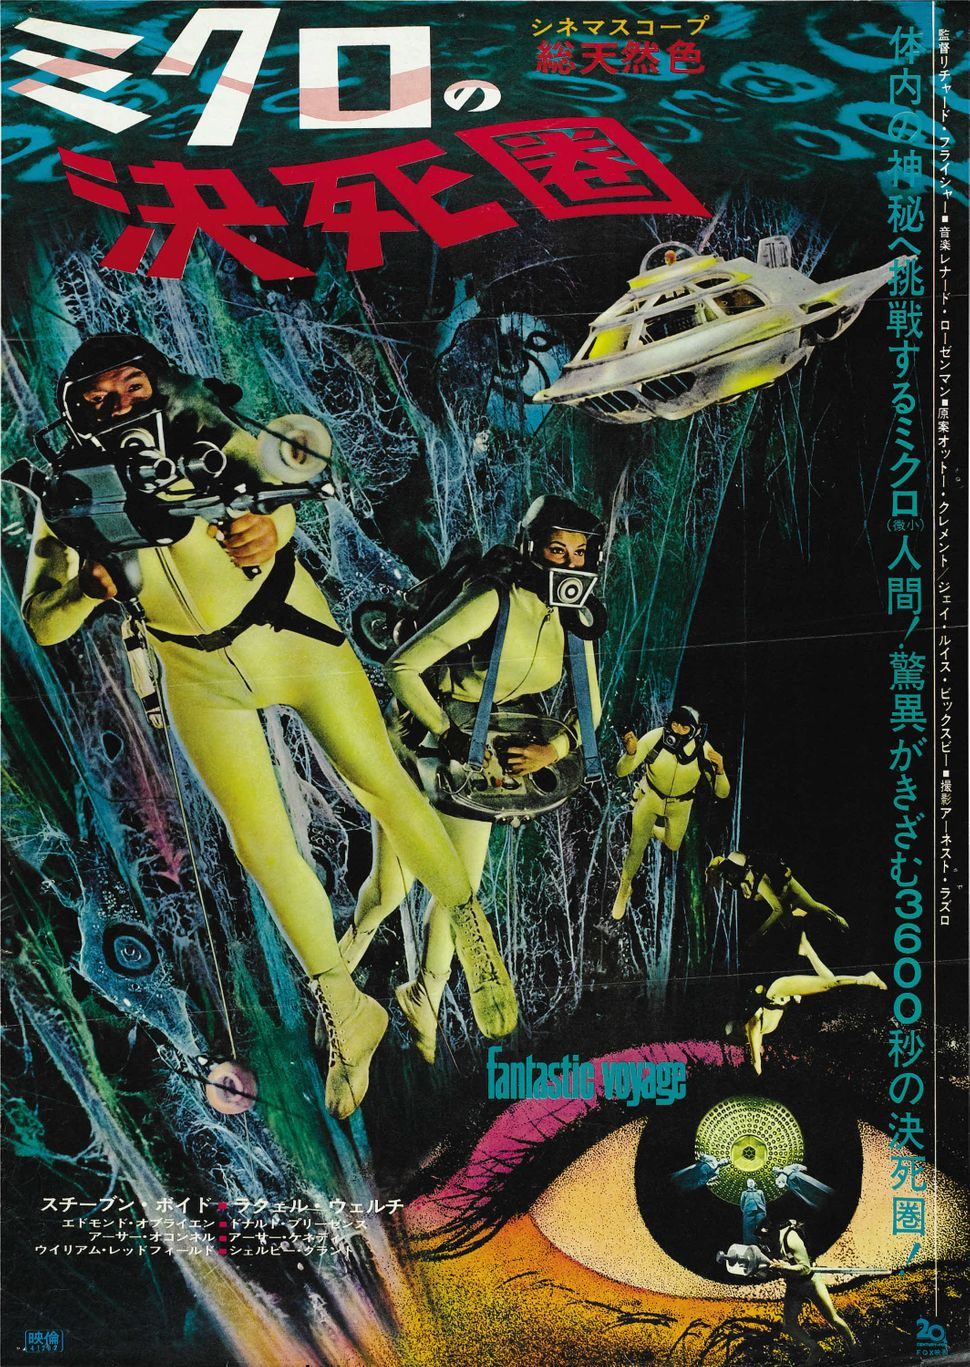 """<a href=""""http://movieposters.ha.com/itm/science-fiction/fantastic-voyage-20th-century-fox-1966-japanese-b2-20-x-29-/a/665-283"""